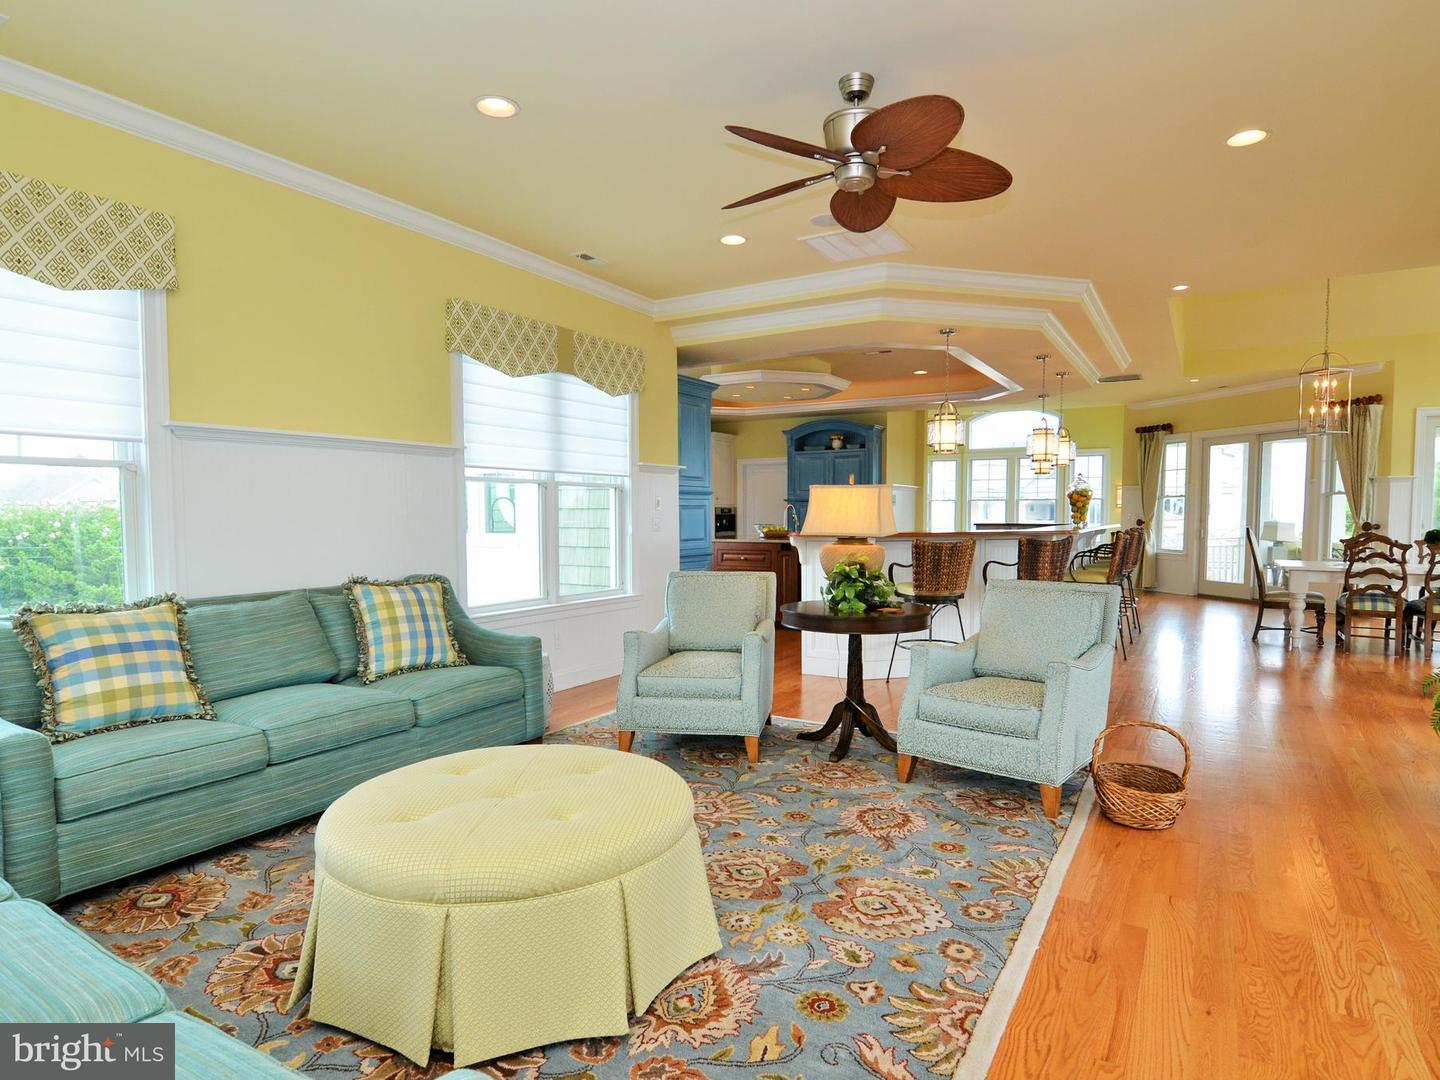 1002293530-300500810107-2018-09-25-15-08-25 31 Hall Ave | Rehoboth Beach, DE Real Estate For Sale | MLS# 1002293530  - 1st Choice Properties